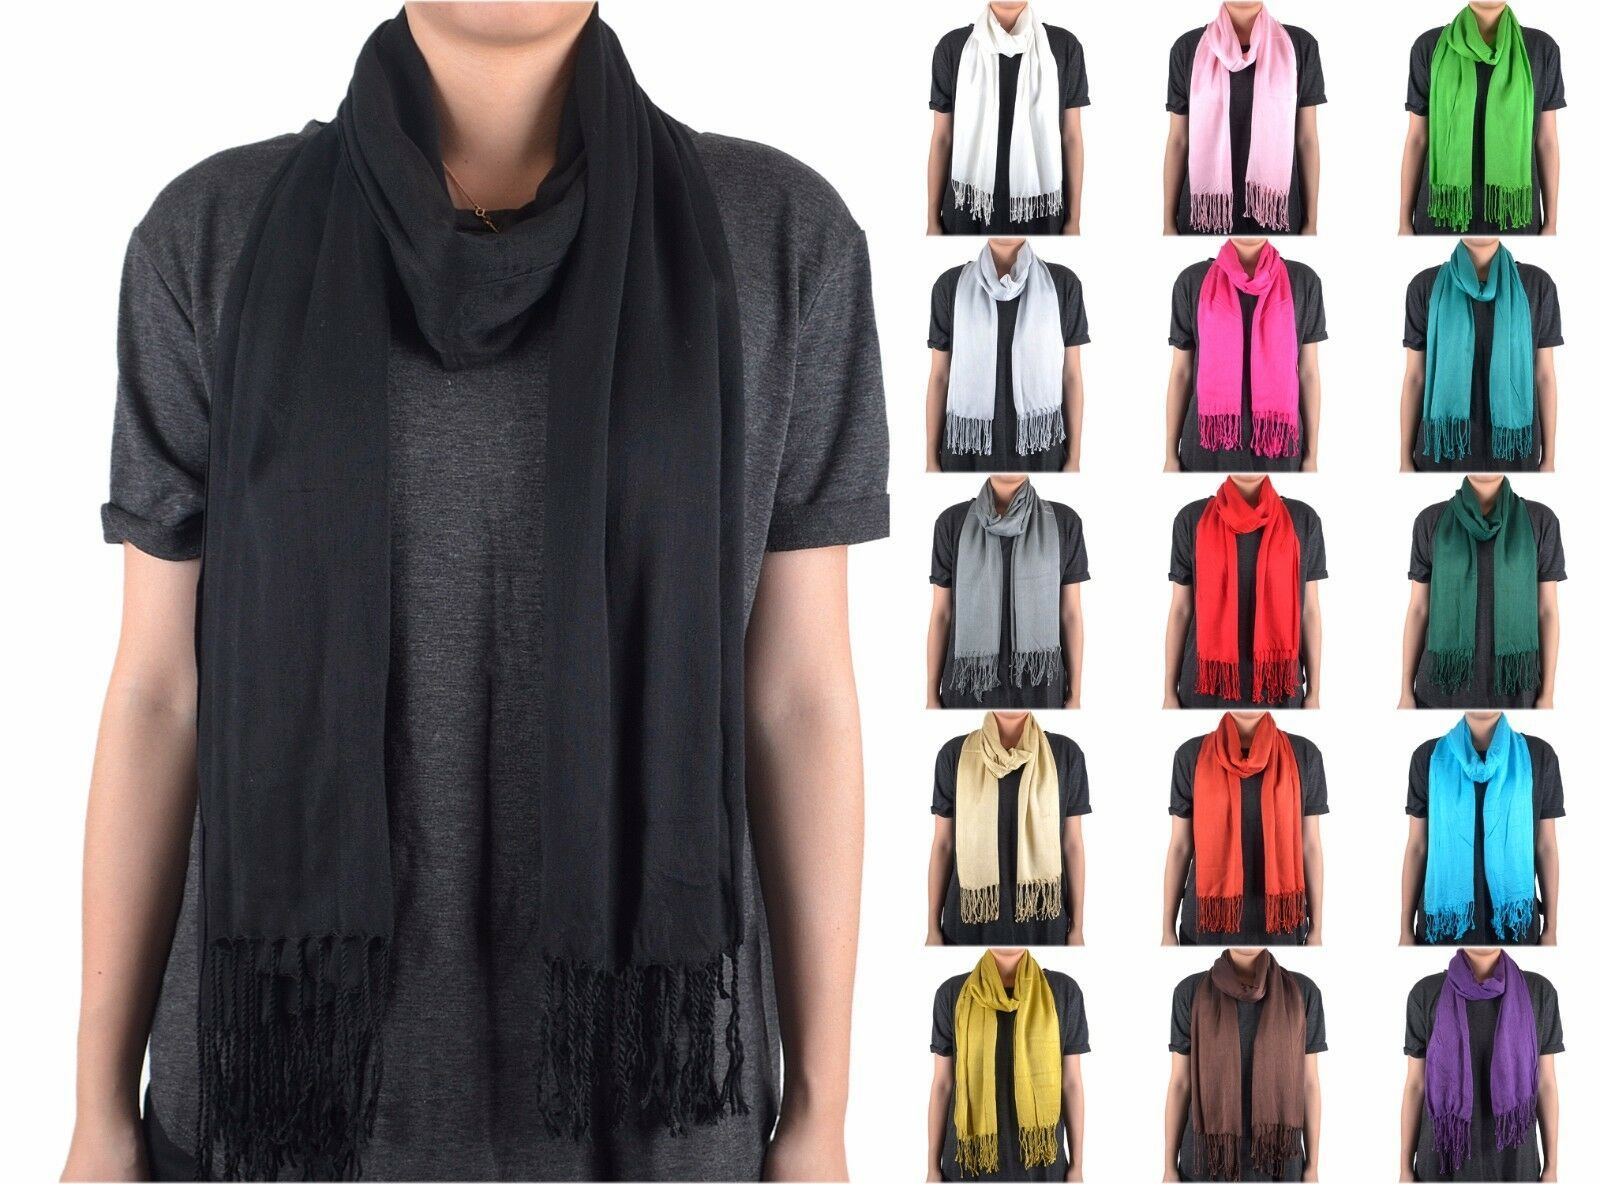 Primary image for Solid Color Plain Long Scarf Wrap Shawl Soft Classic Fashion Fringe Tassel